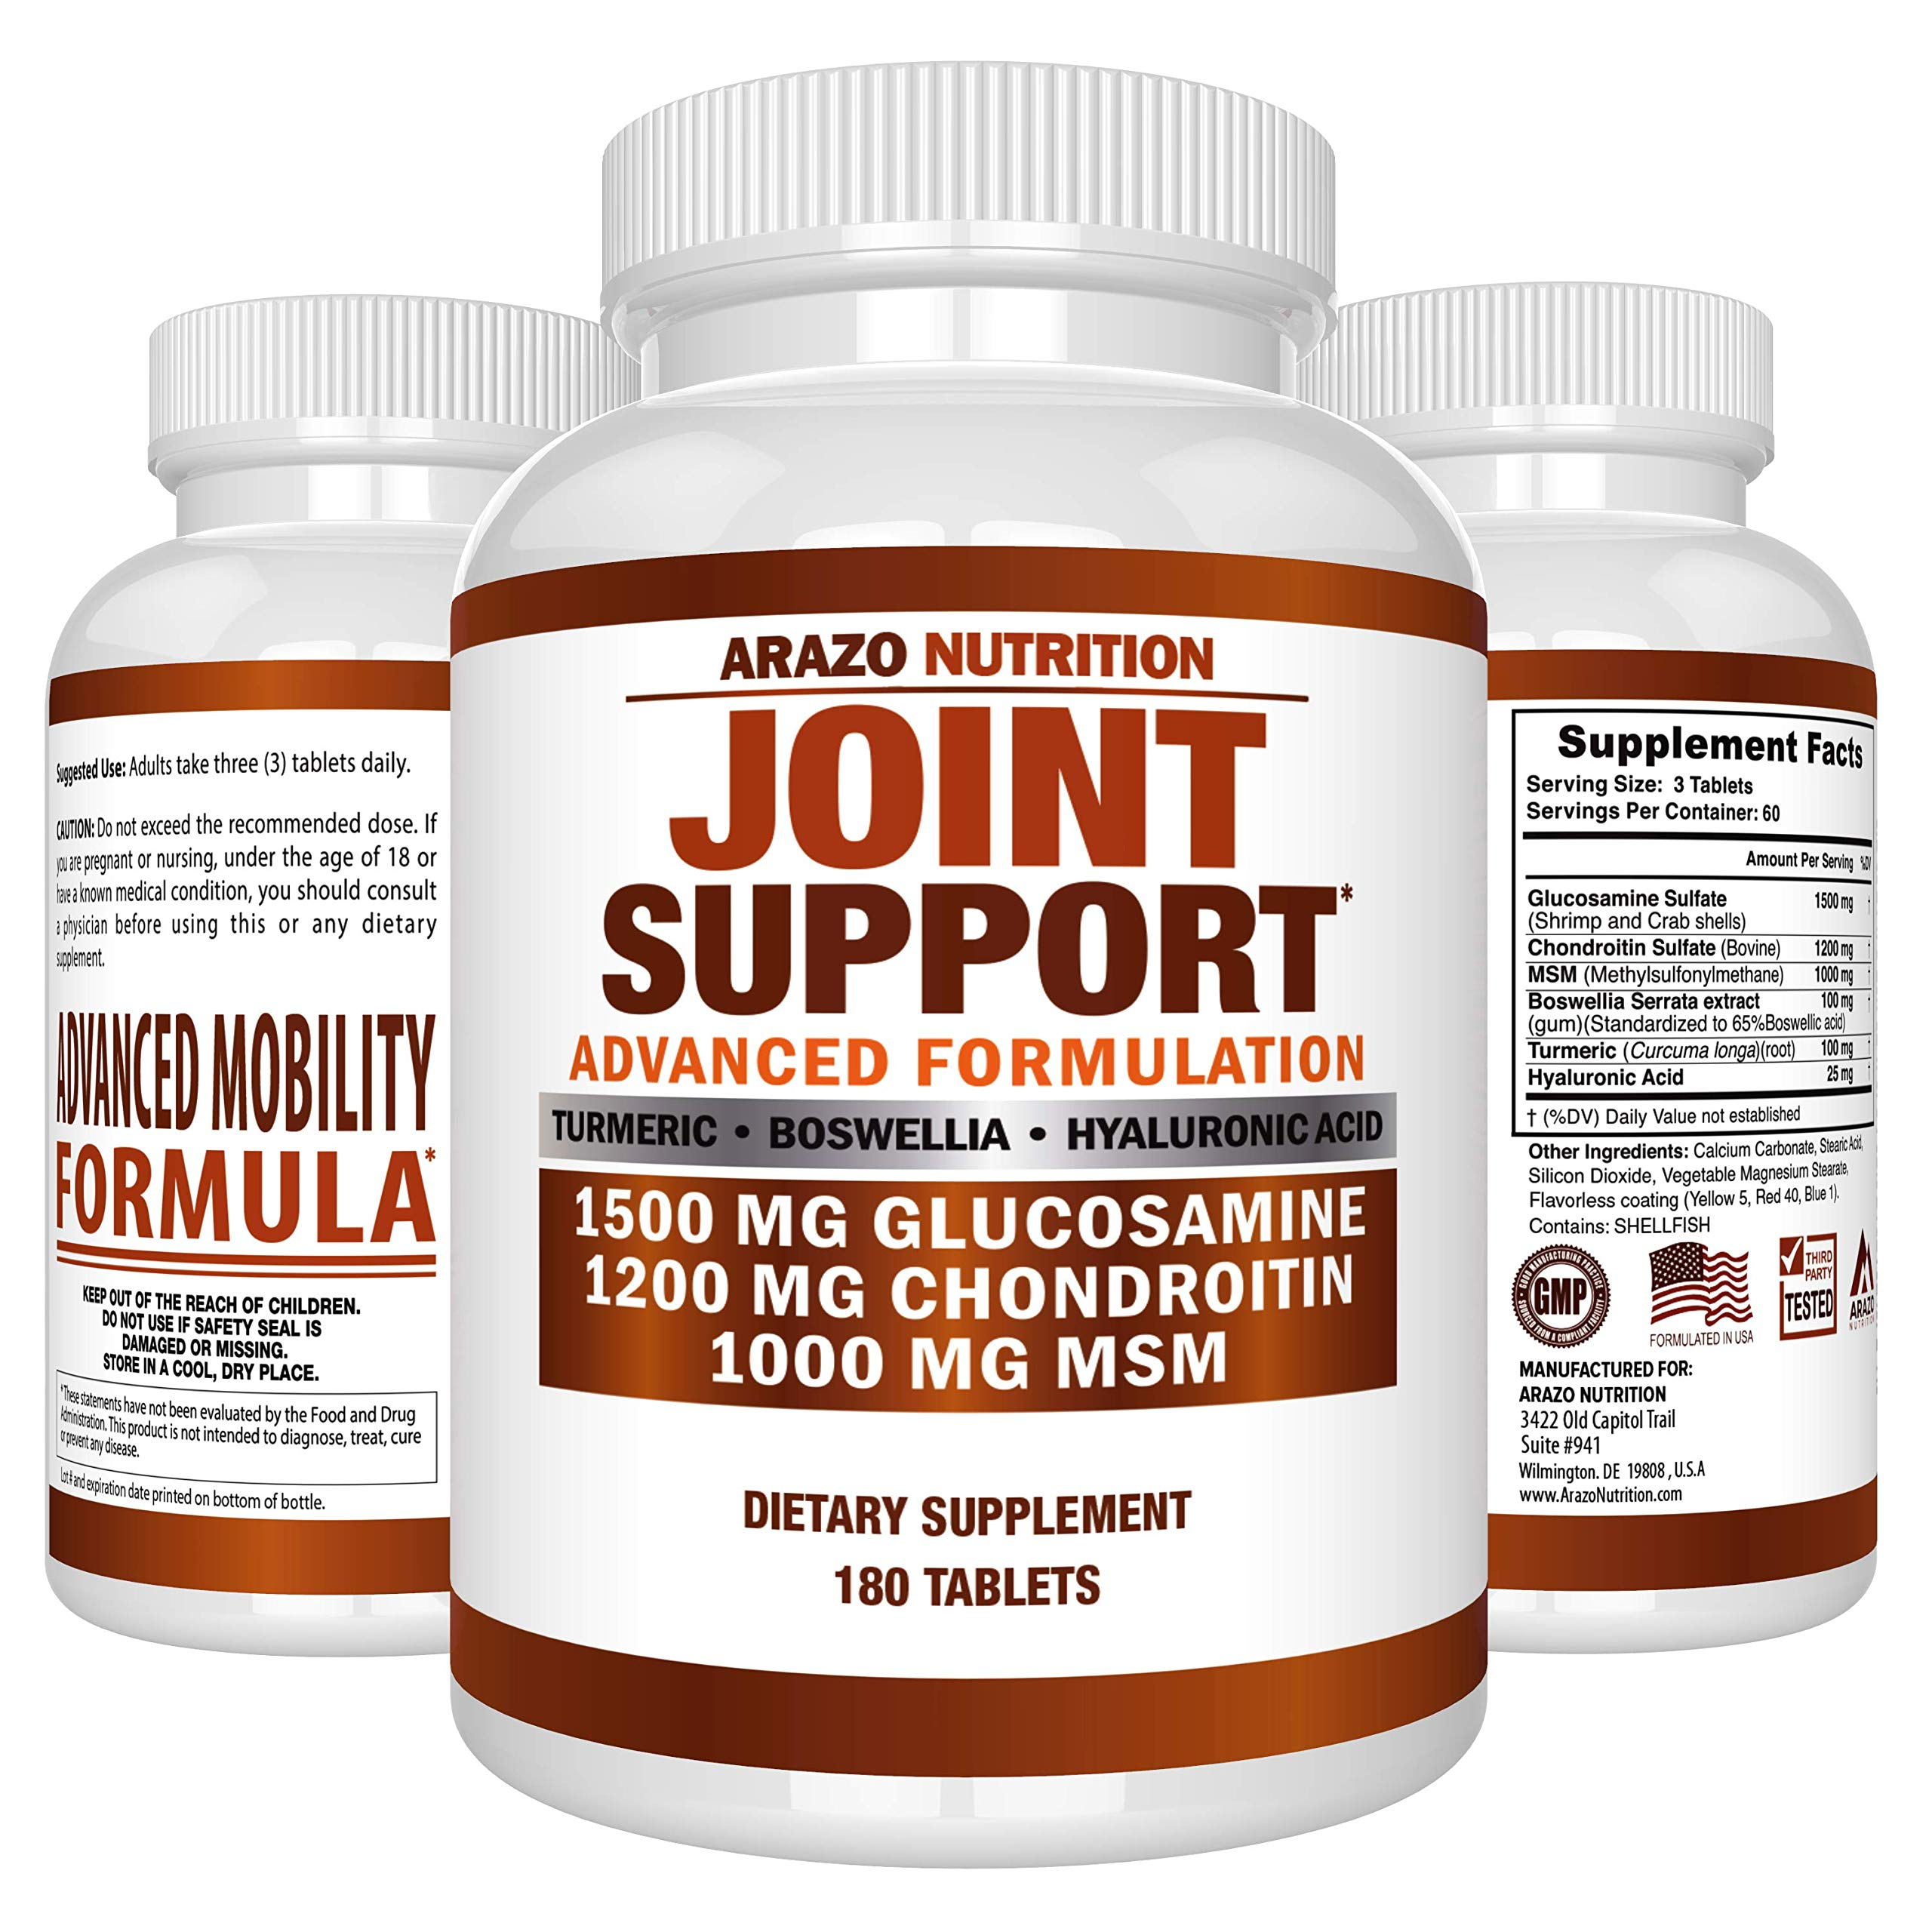 Glucosamine Chondroitin Turmeric MSM Boswellia - Joint Support Supplement for Relief 180 Tablets - Arazo Nutrition by Arazo Nutrition